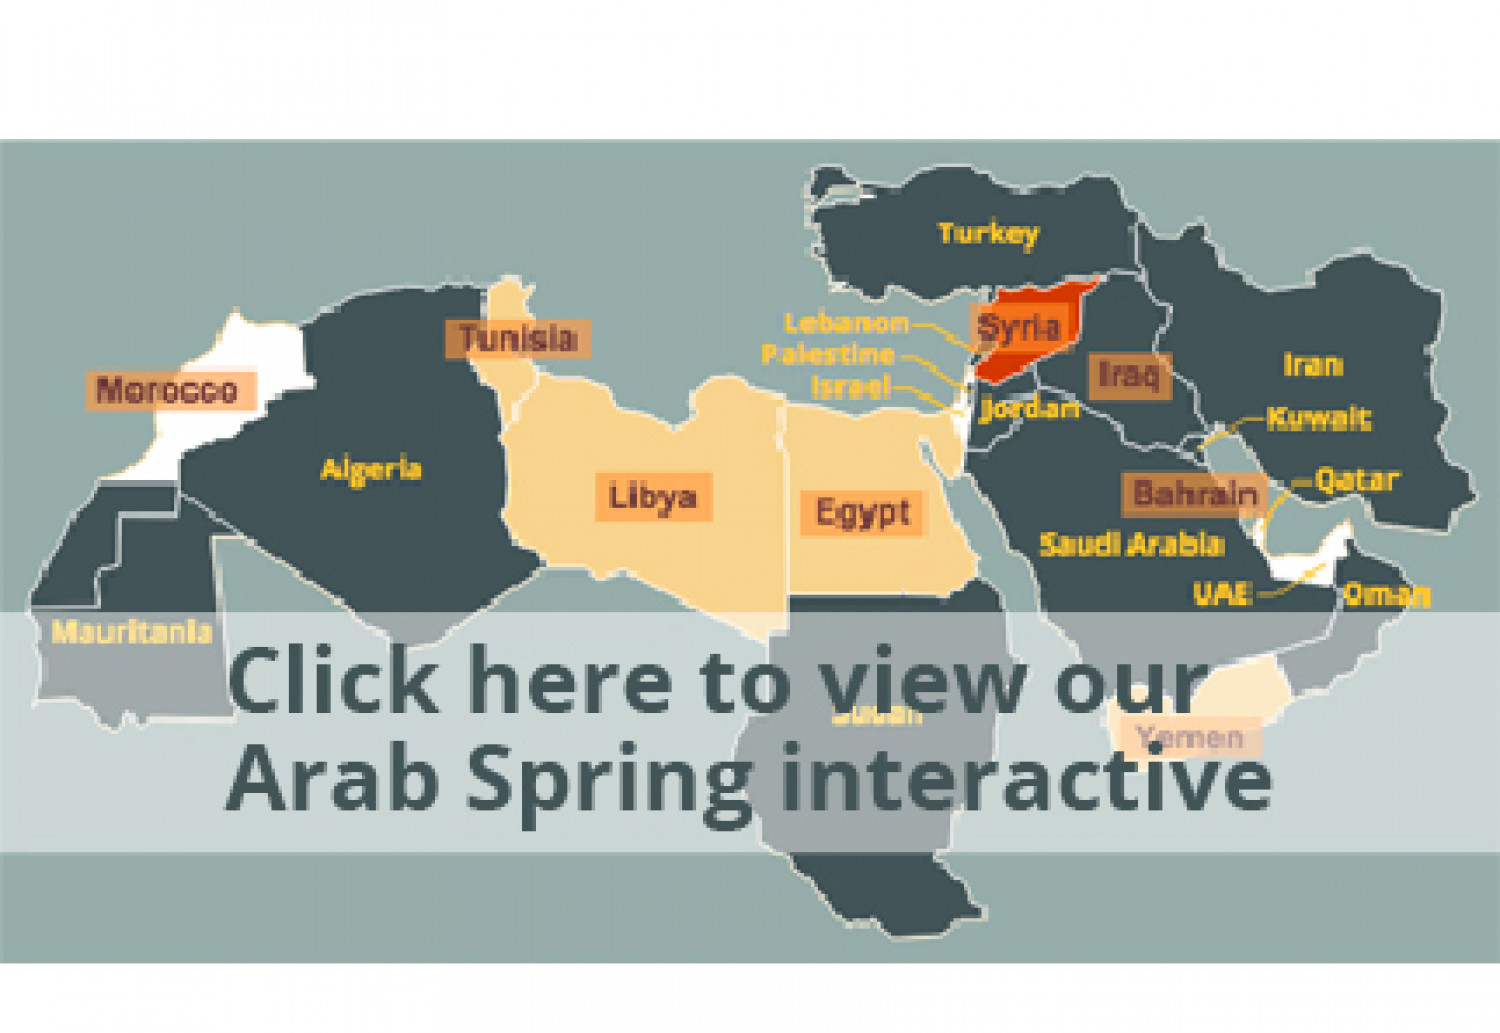 Four years after the Arab Spring uprising Infographic